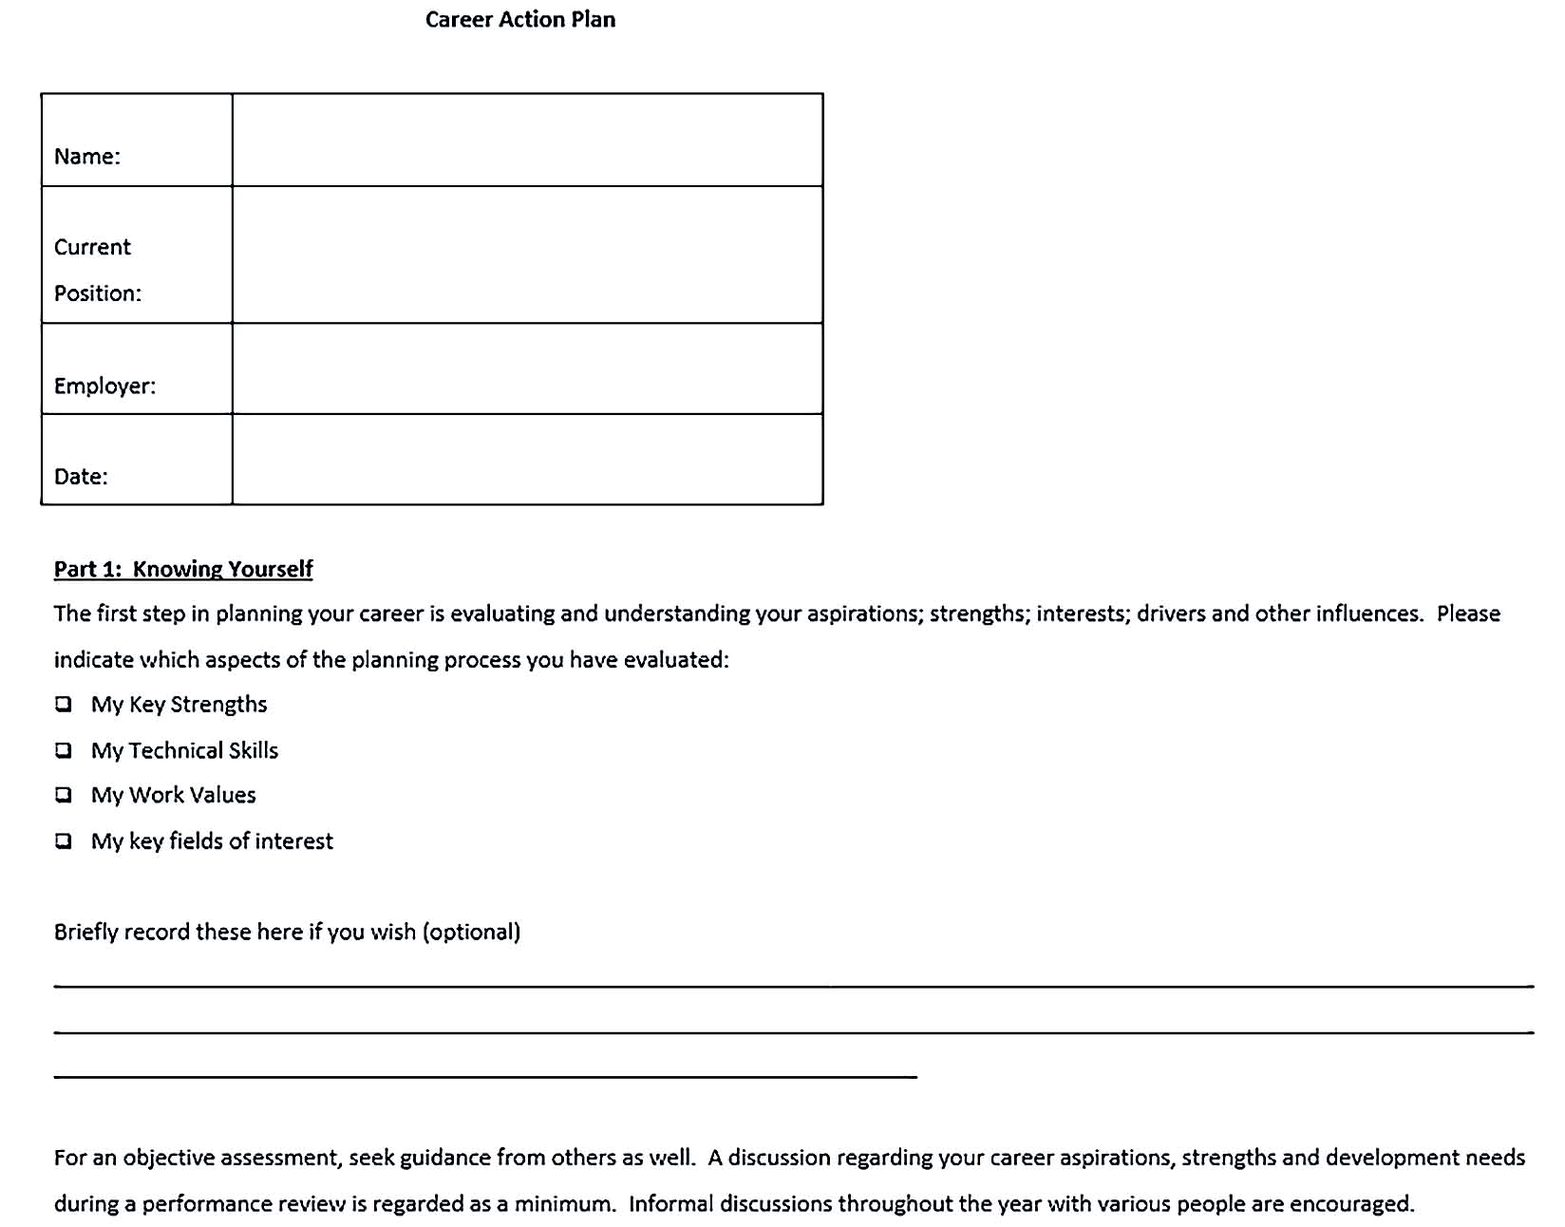 Free Career Action Plan Template Word Format